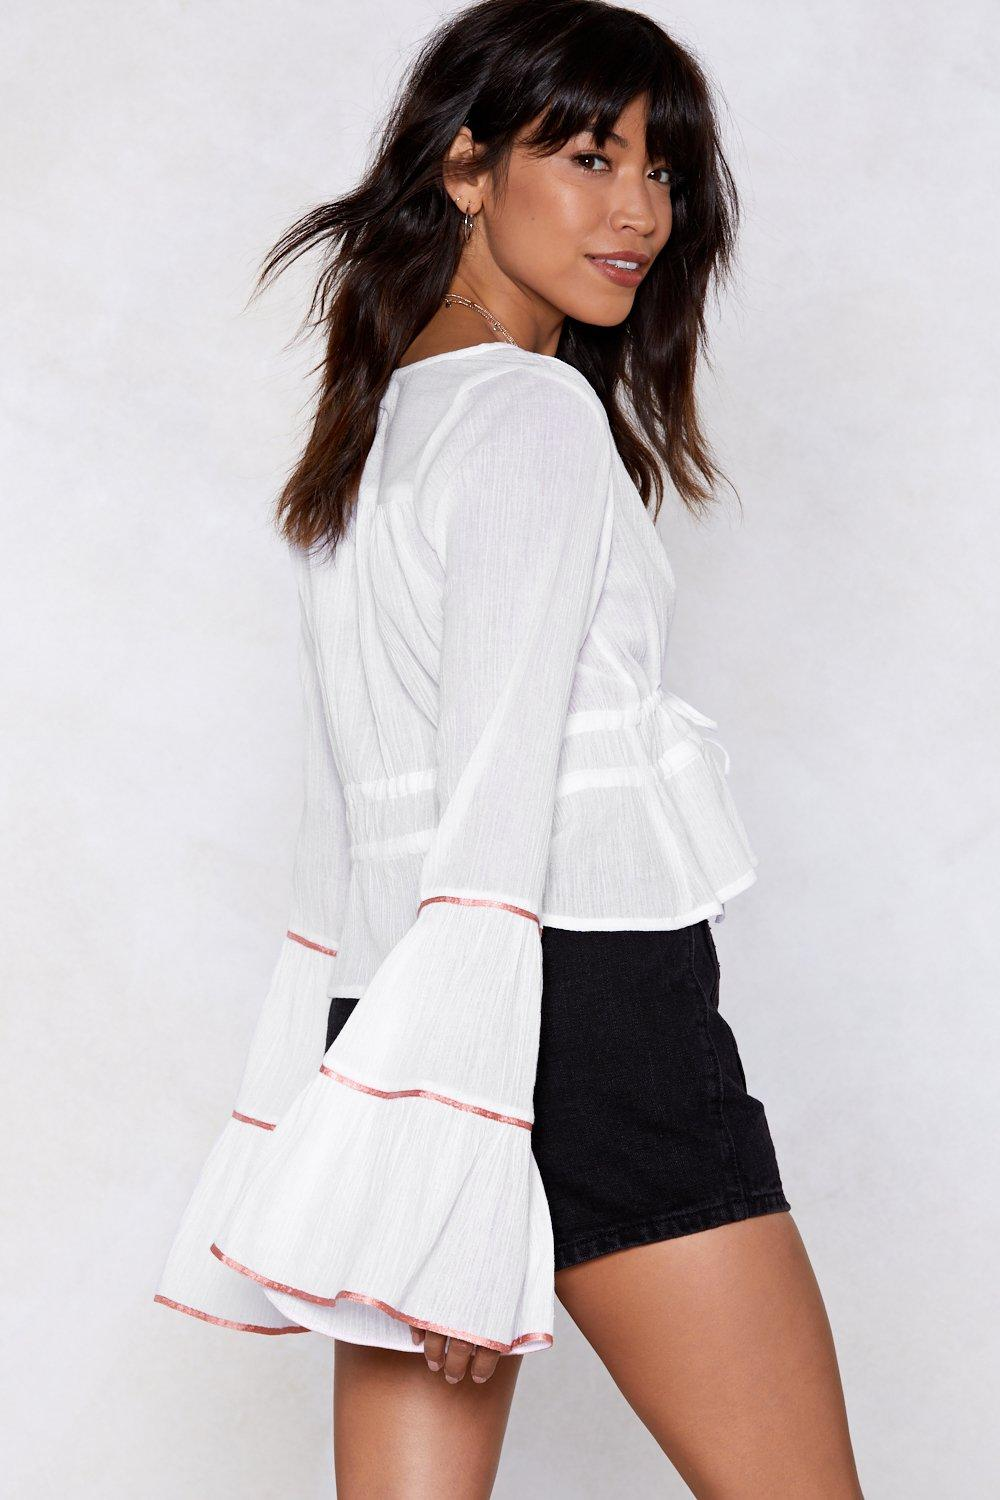 a34ad4203c660 Ring My Bell Sleeves Blouse. Hover to zoom